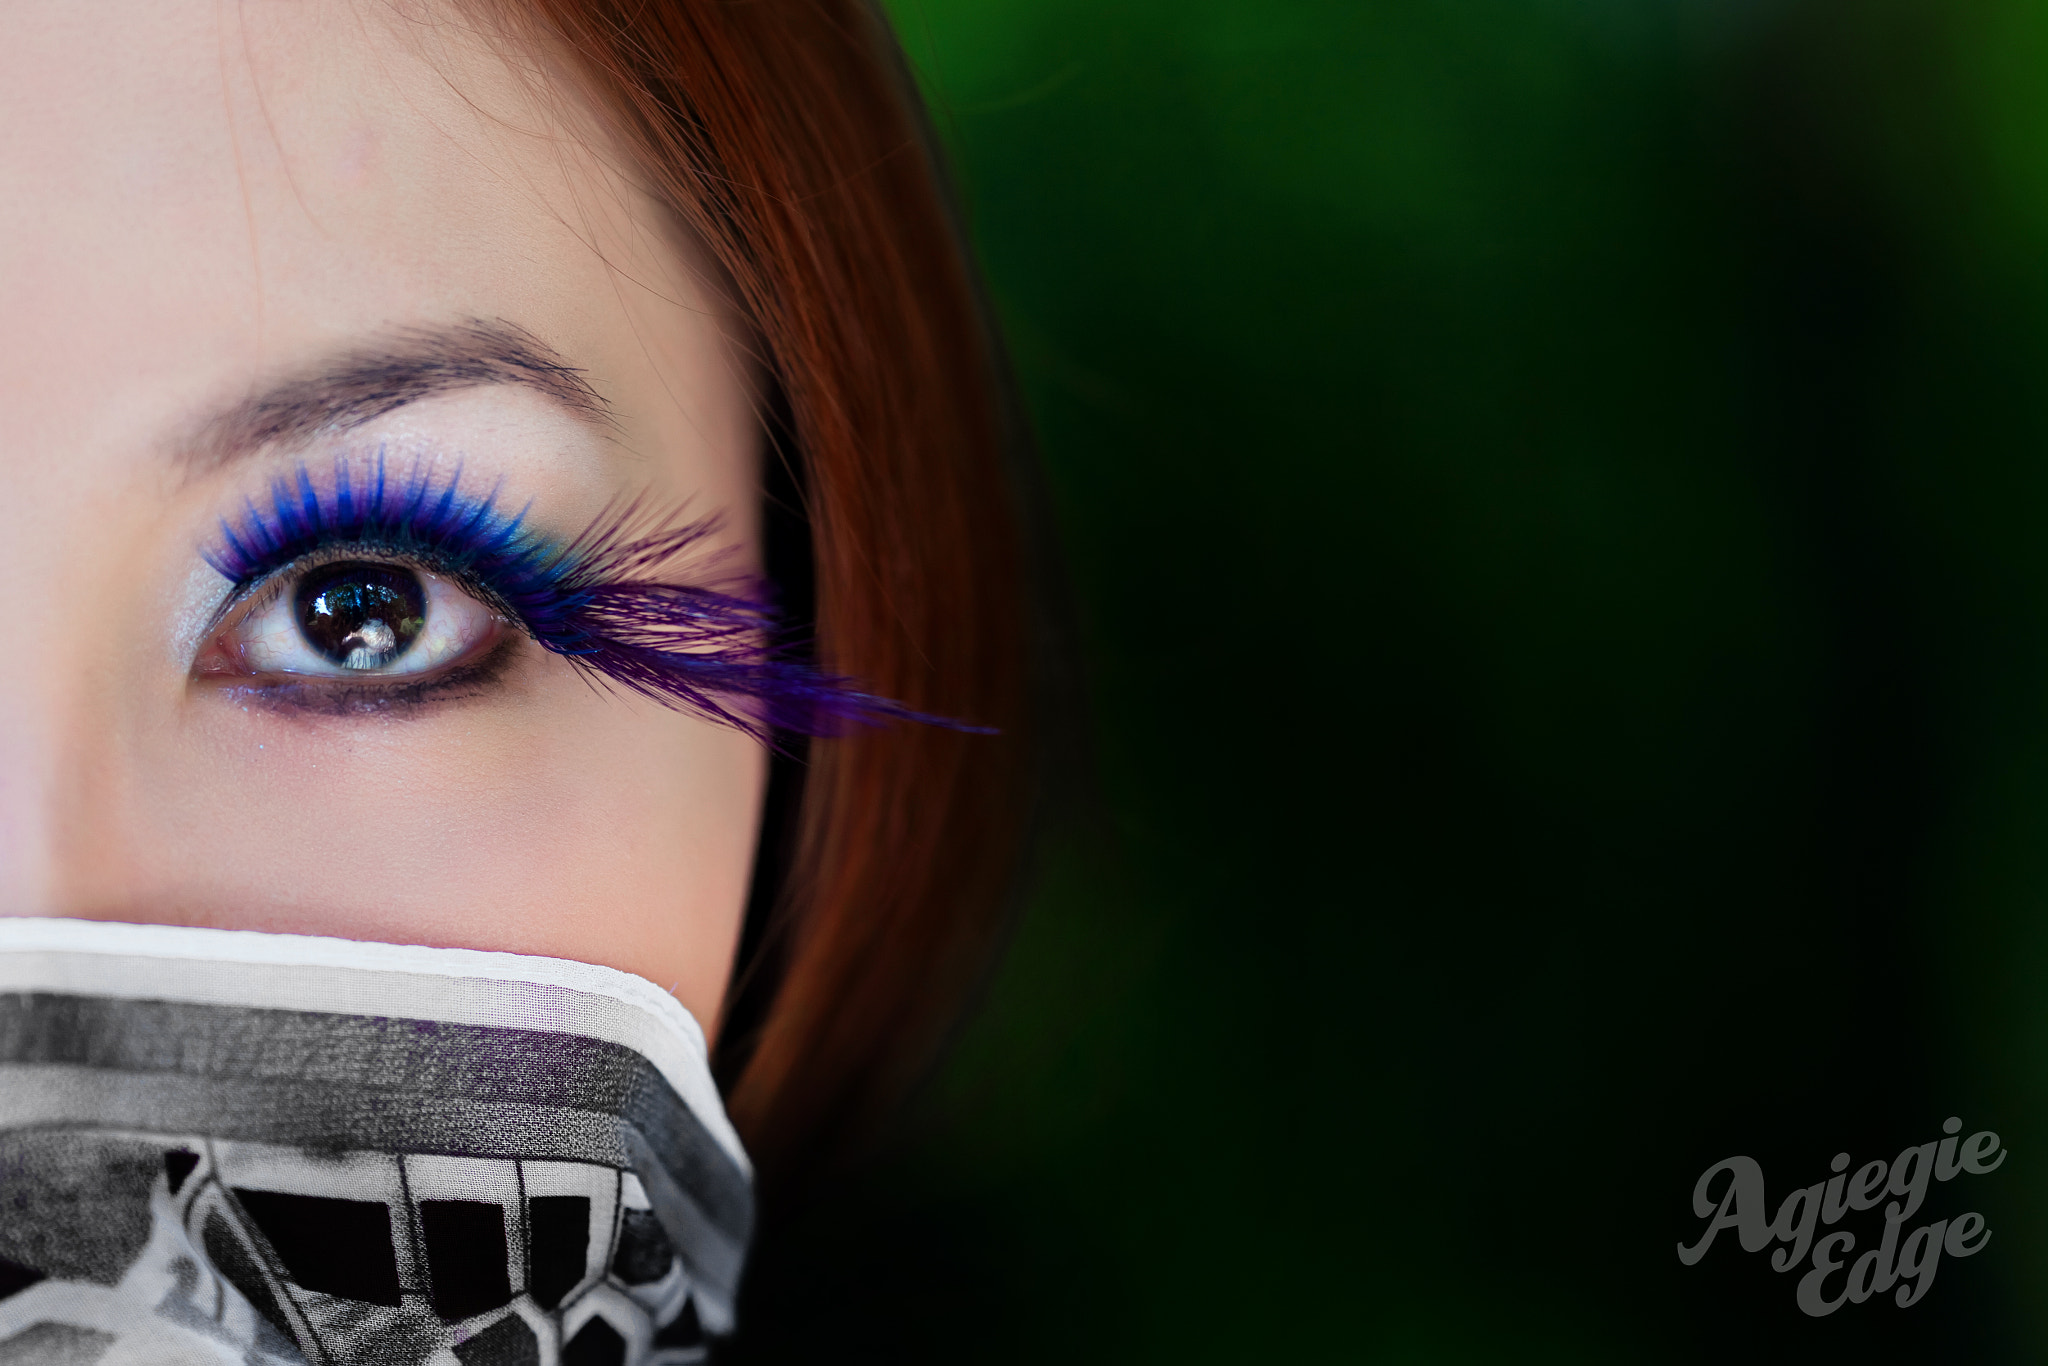 Photograph The Look by Agiegie Edge on 500px